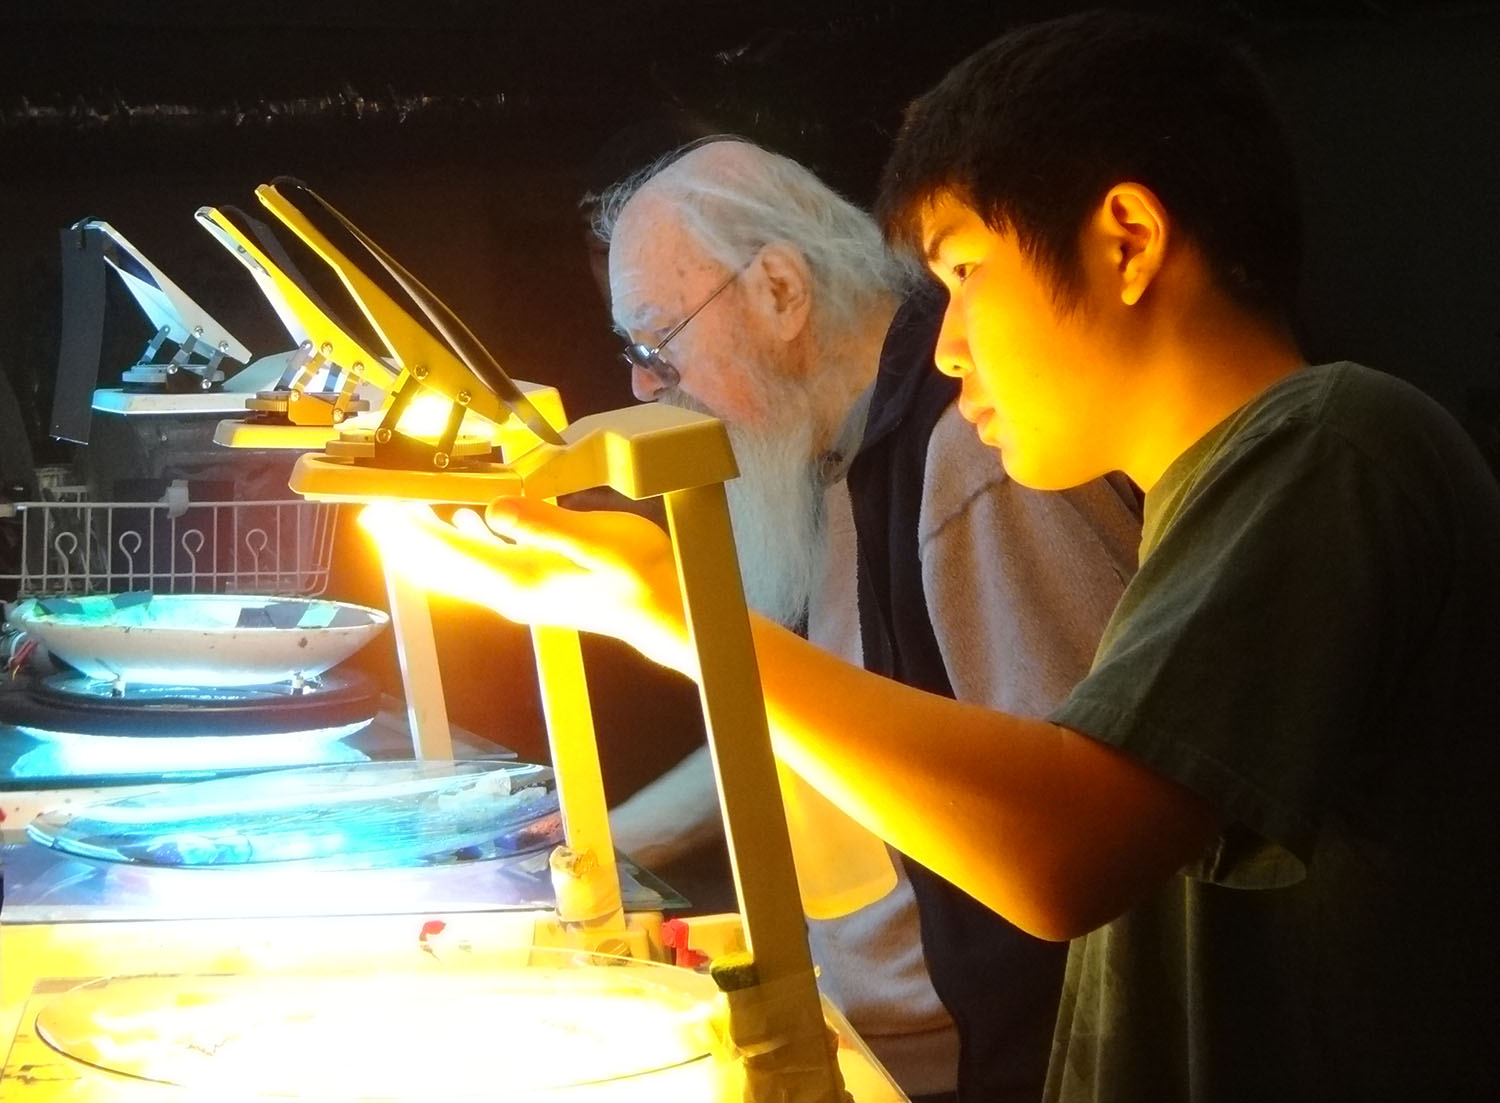 In recent years, Bill Ham has been passing his light-show techniques on to a new generation. Here he instructs Kaishi Ito on the finer points of working with liquids in glass bowls on overhead projectors.